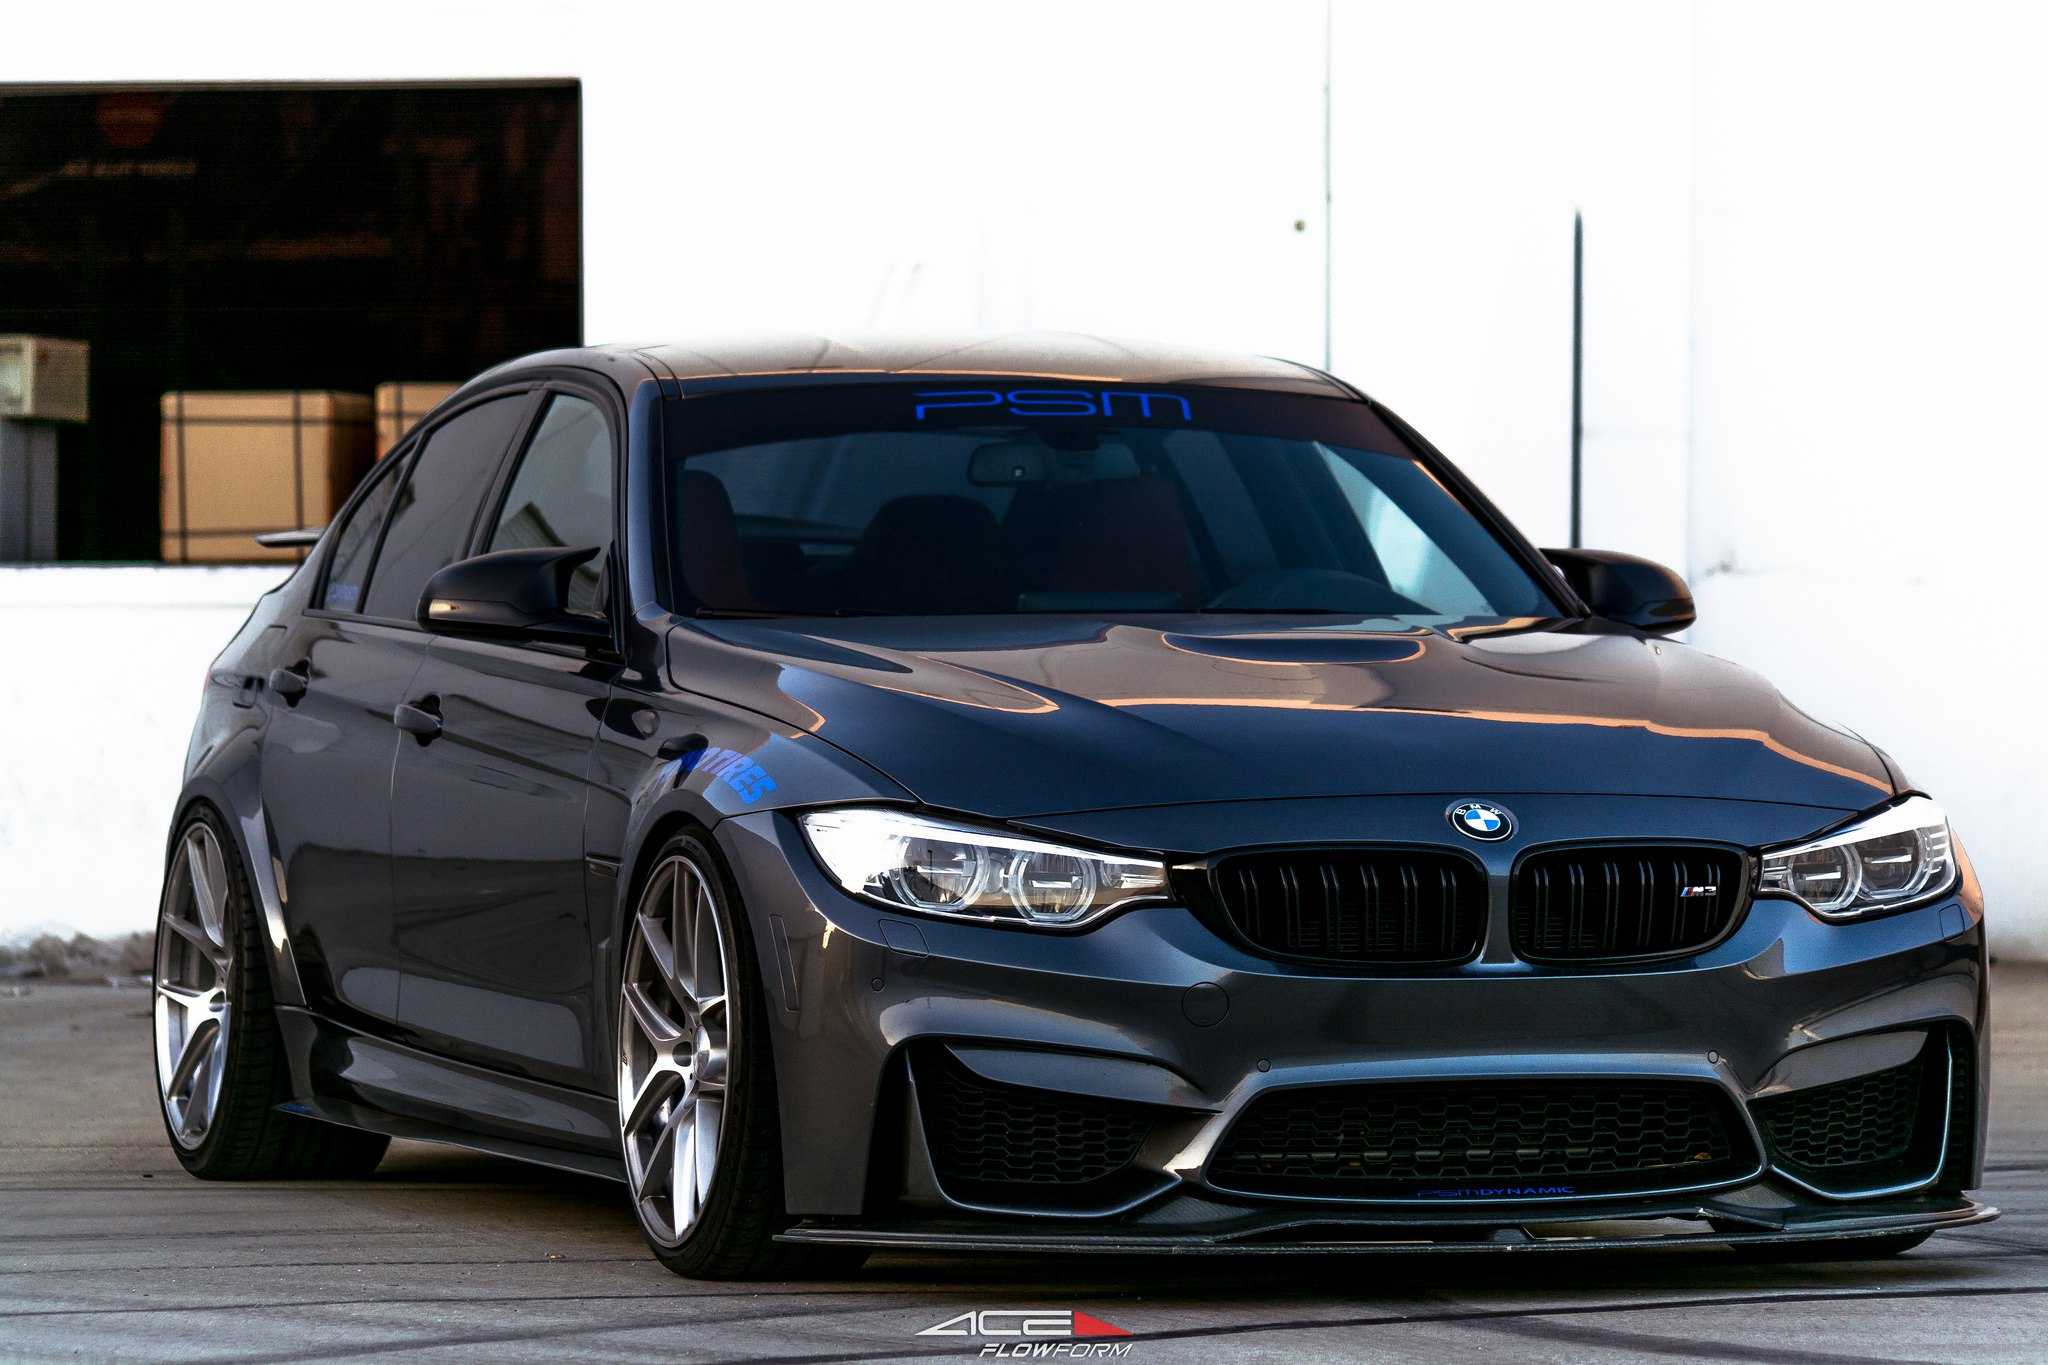 Lowered Bmw M3 Sedan With A Front Bumper Splitter Carid Com Gallery